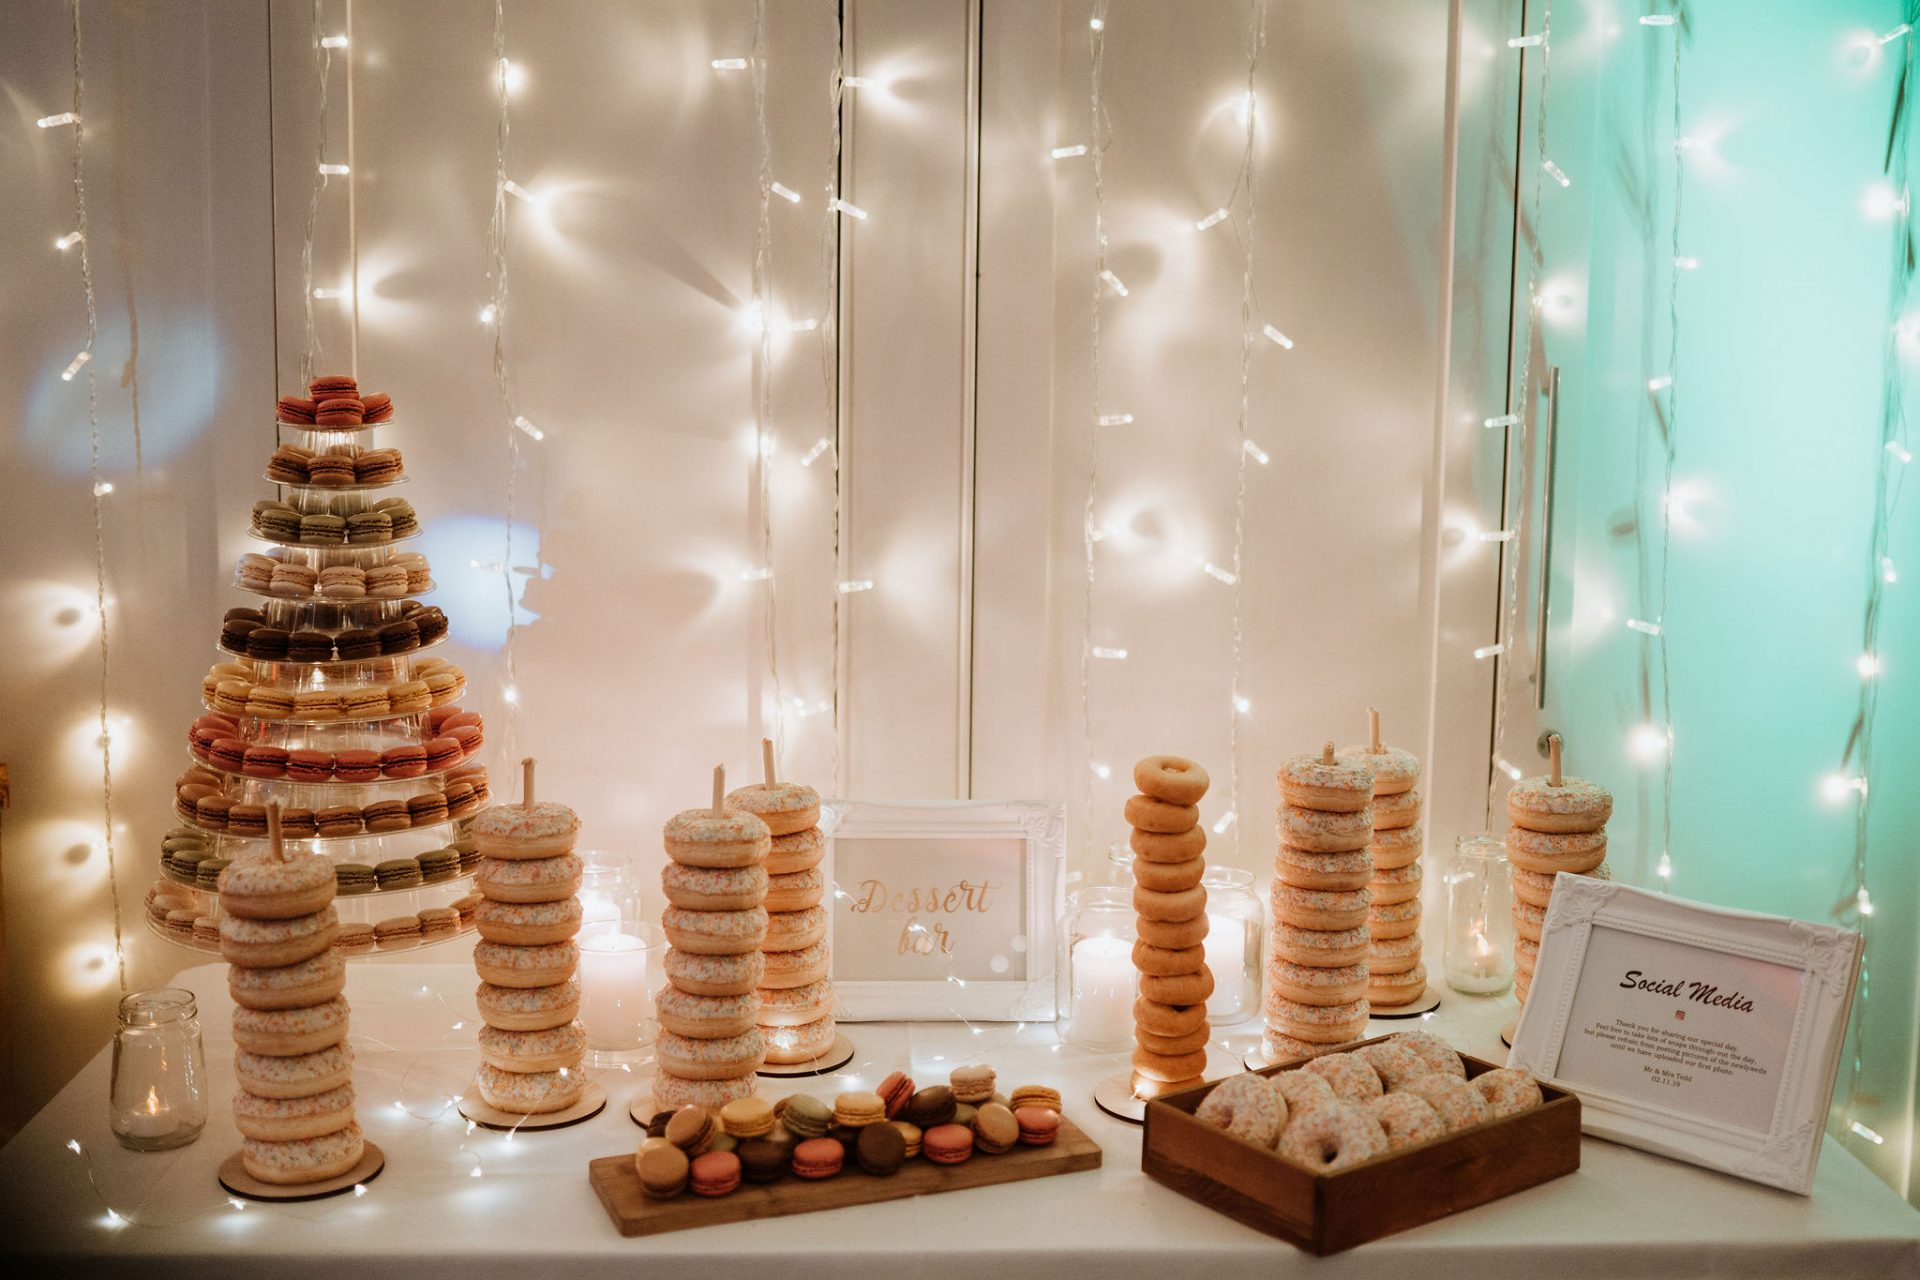 dessert table donuts macaroons fairy lights